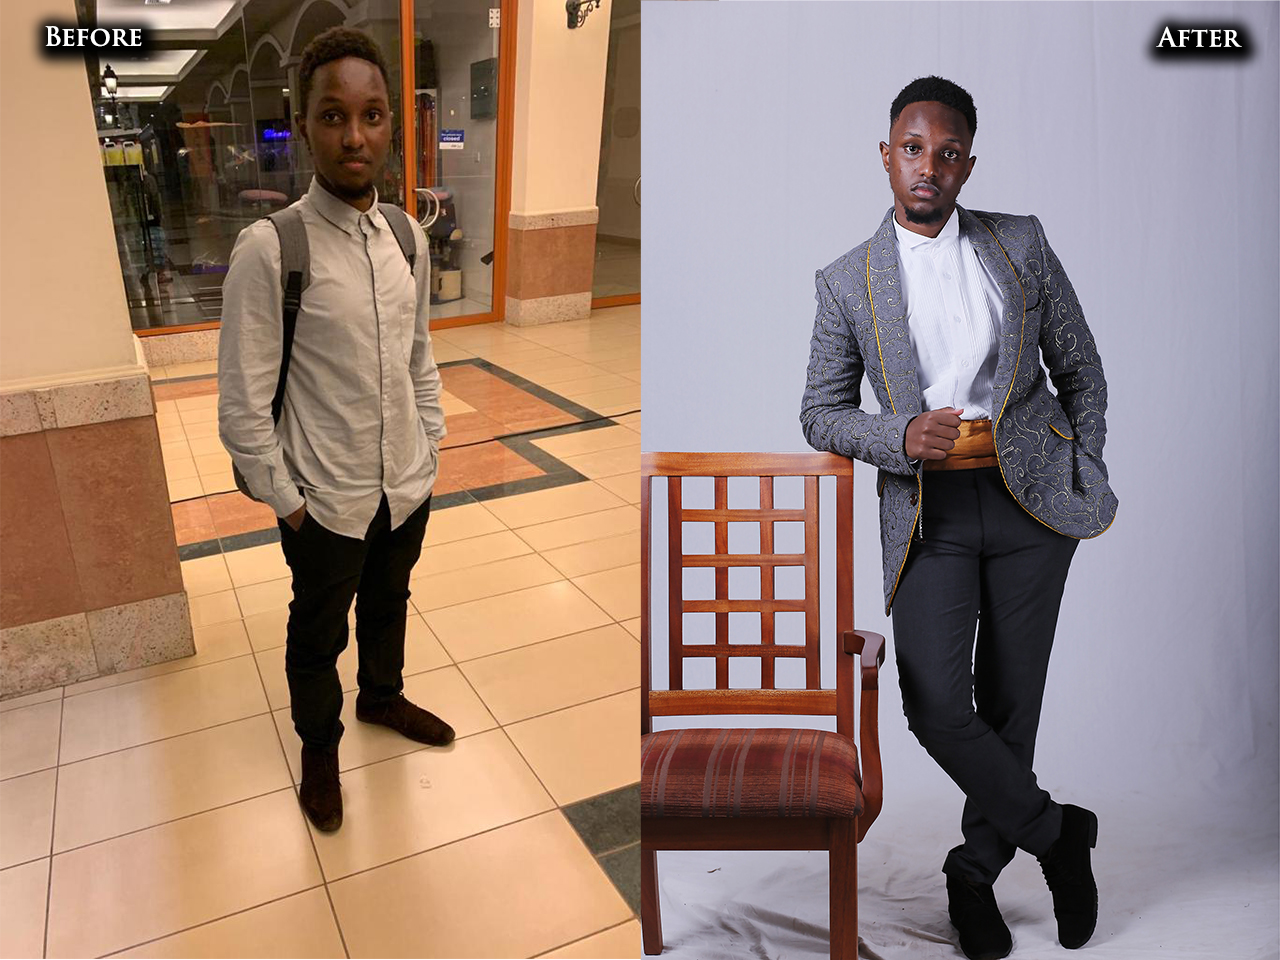 An entrepreneur get's a fashion makeover thanks to advice from his wife | A Men's Makeover Series